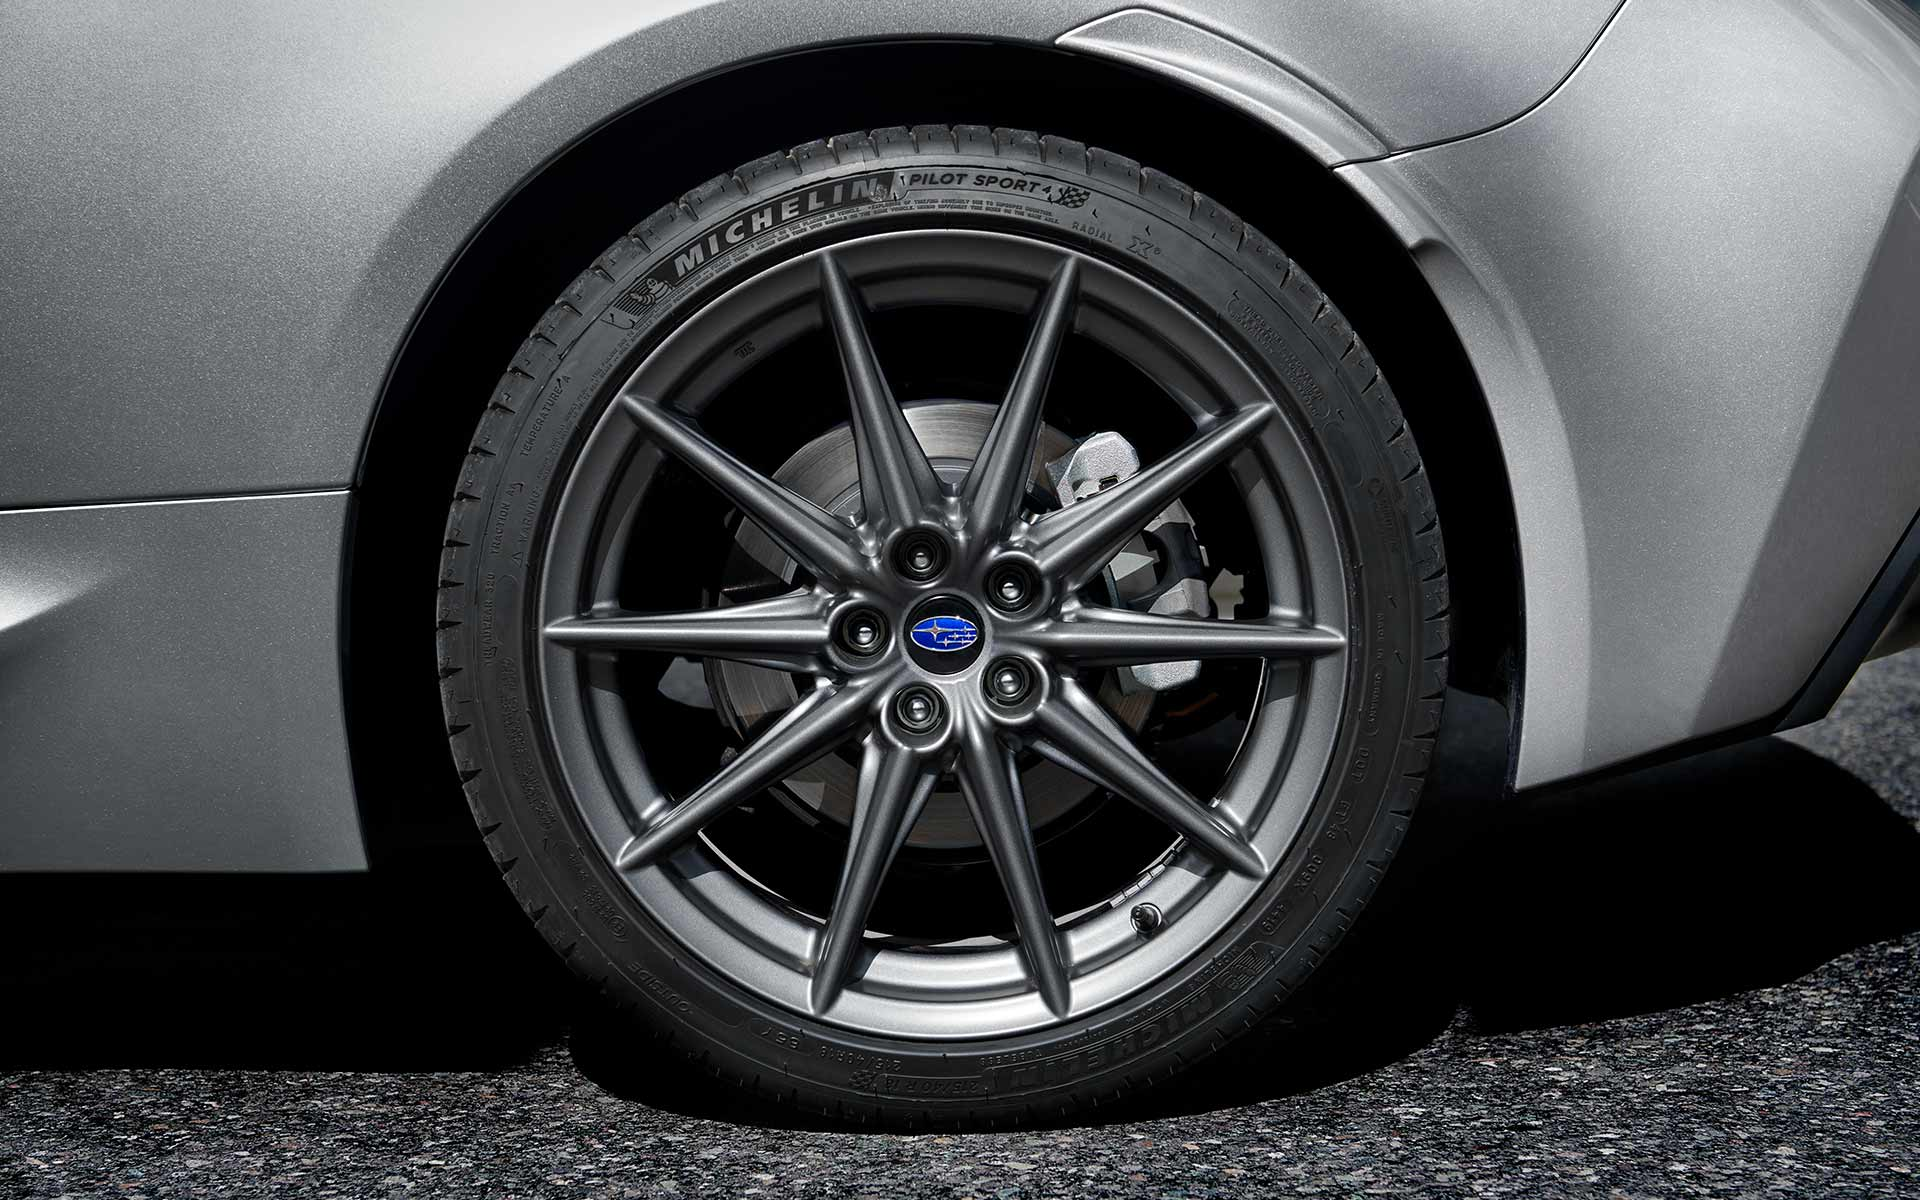 2022 Subaru BRZ wheels and tires